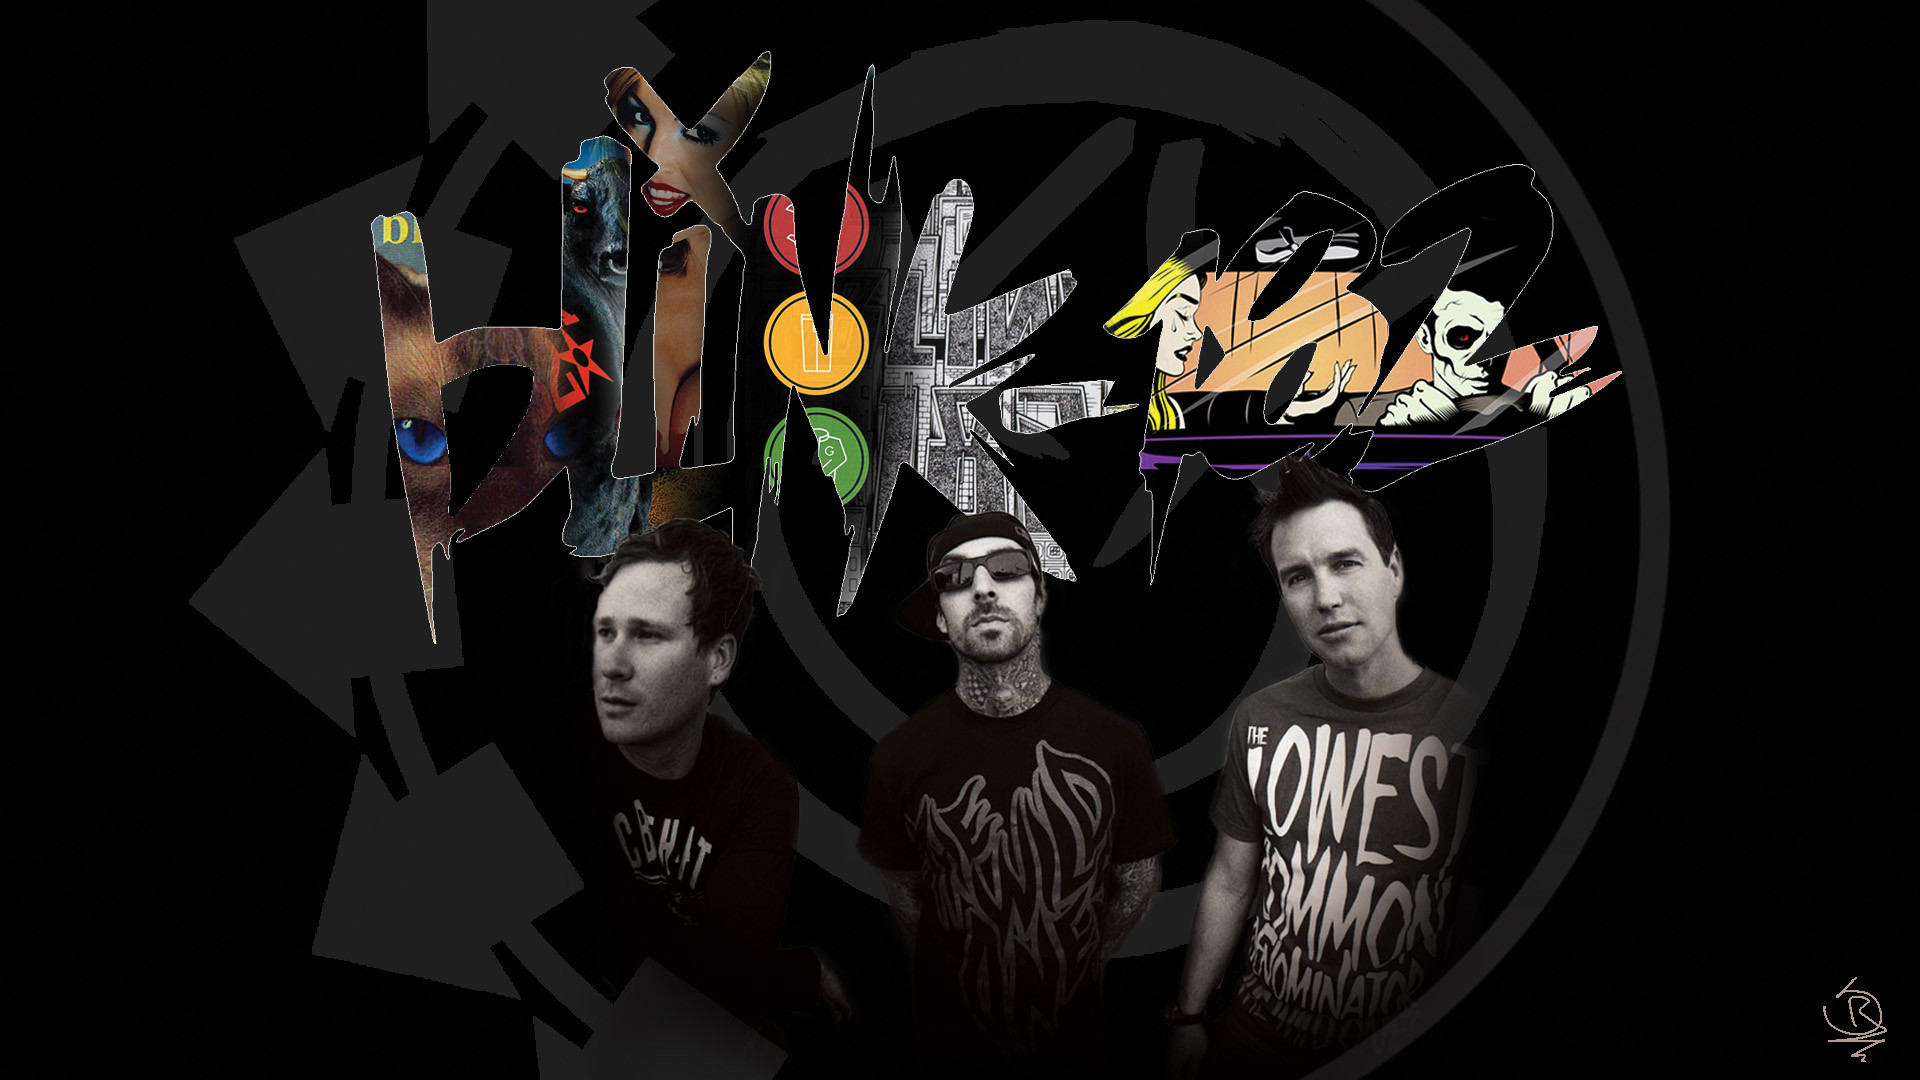 1920x1080 ... Blink-182 Albums Poster (Tom DeLonge) by SebastianR115